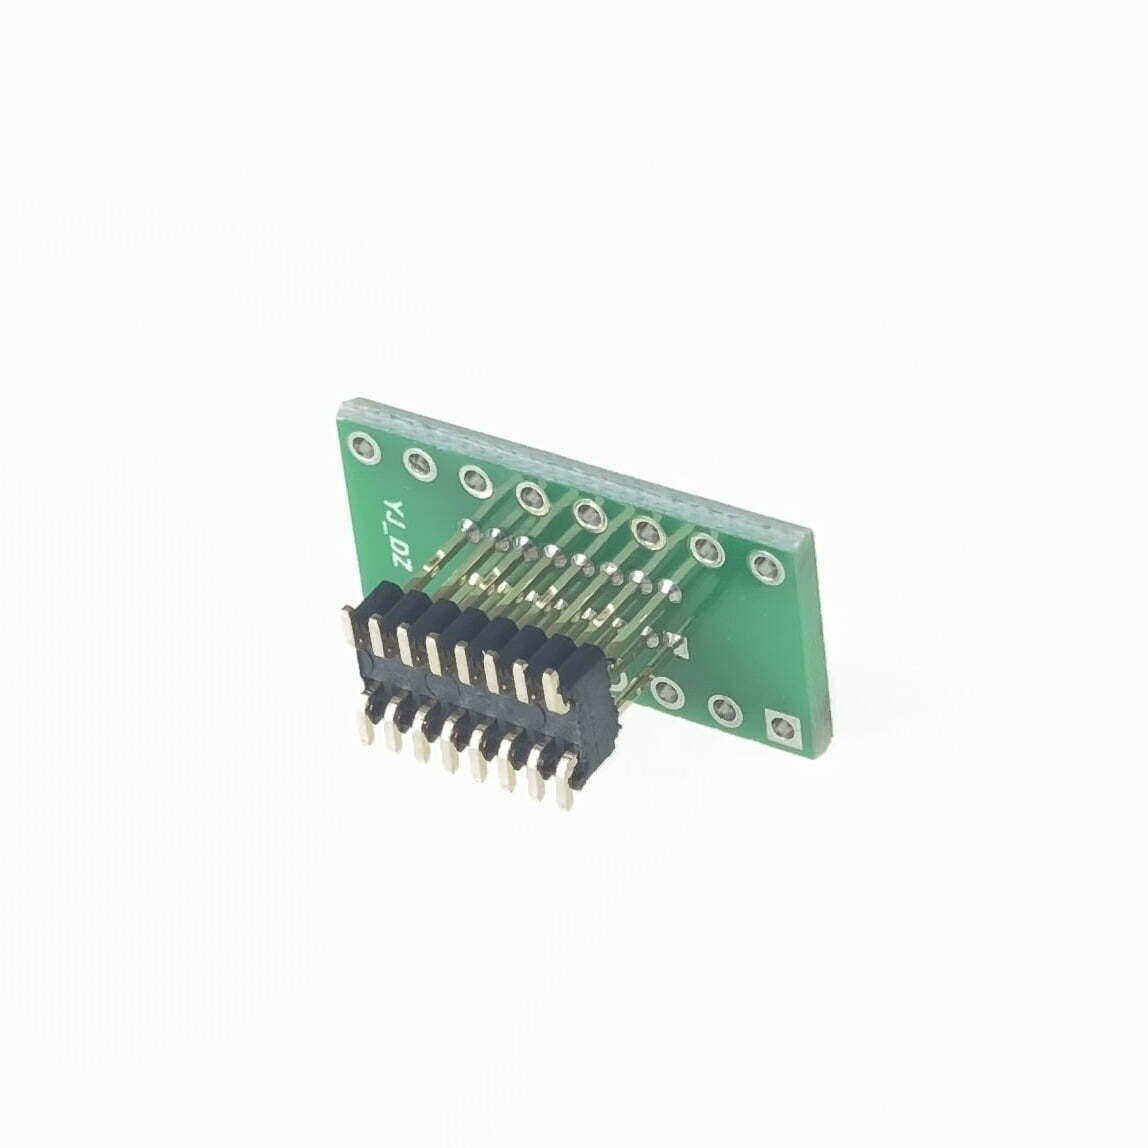 DIP16 to SOIC16 Adapter